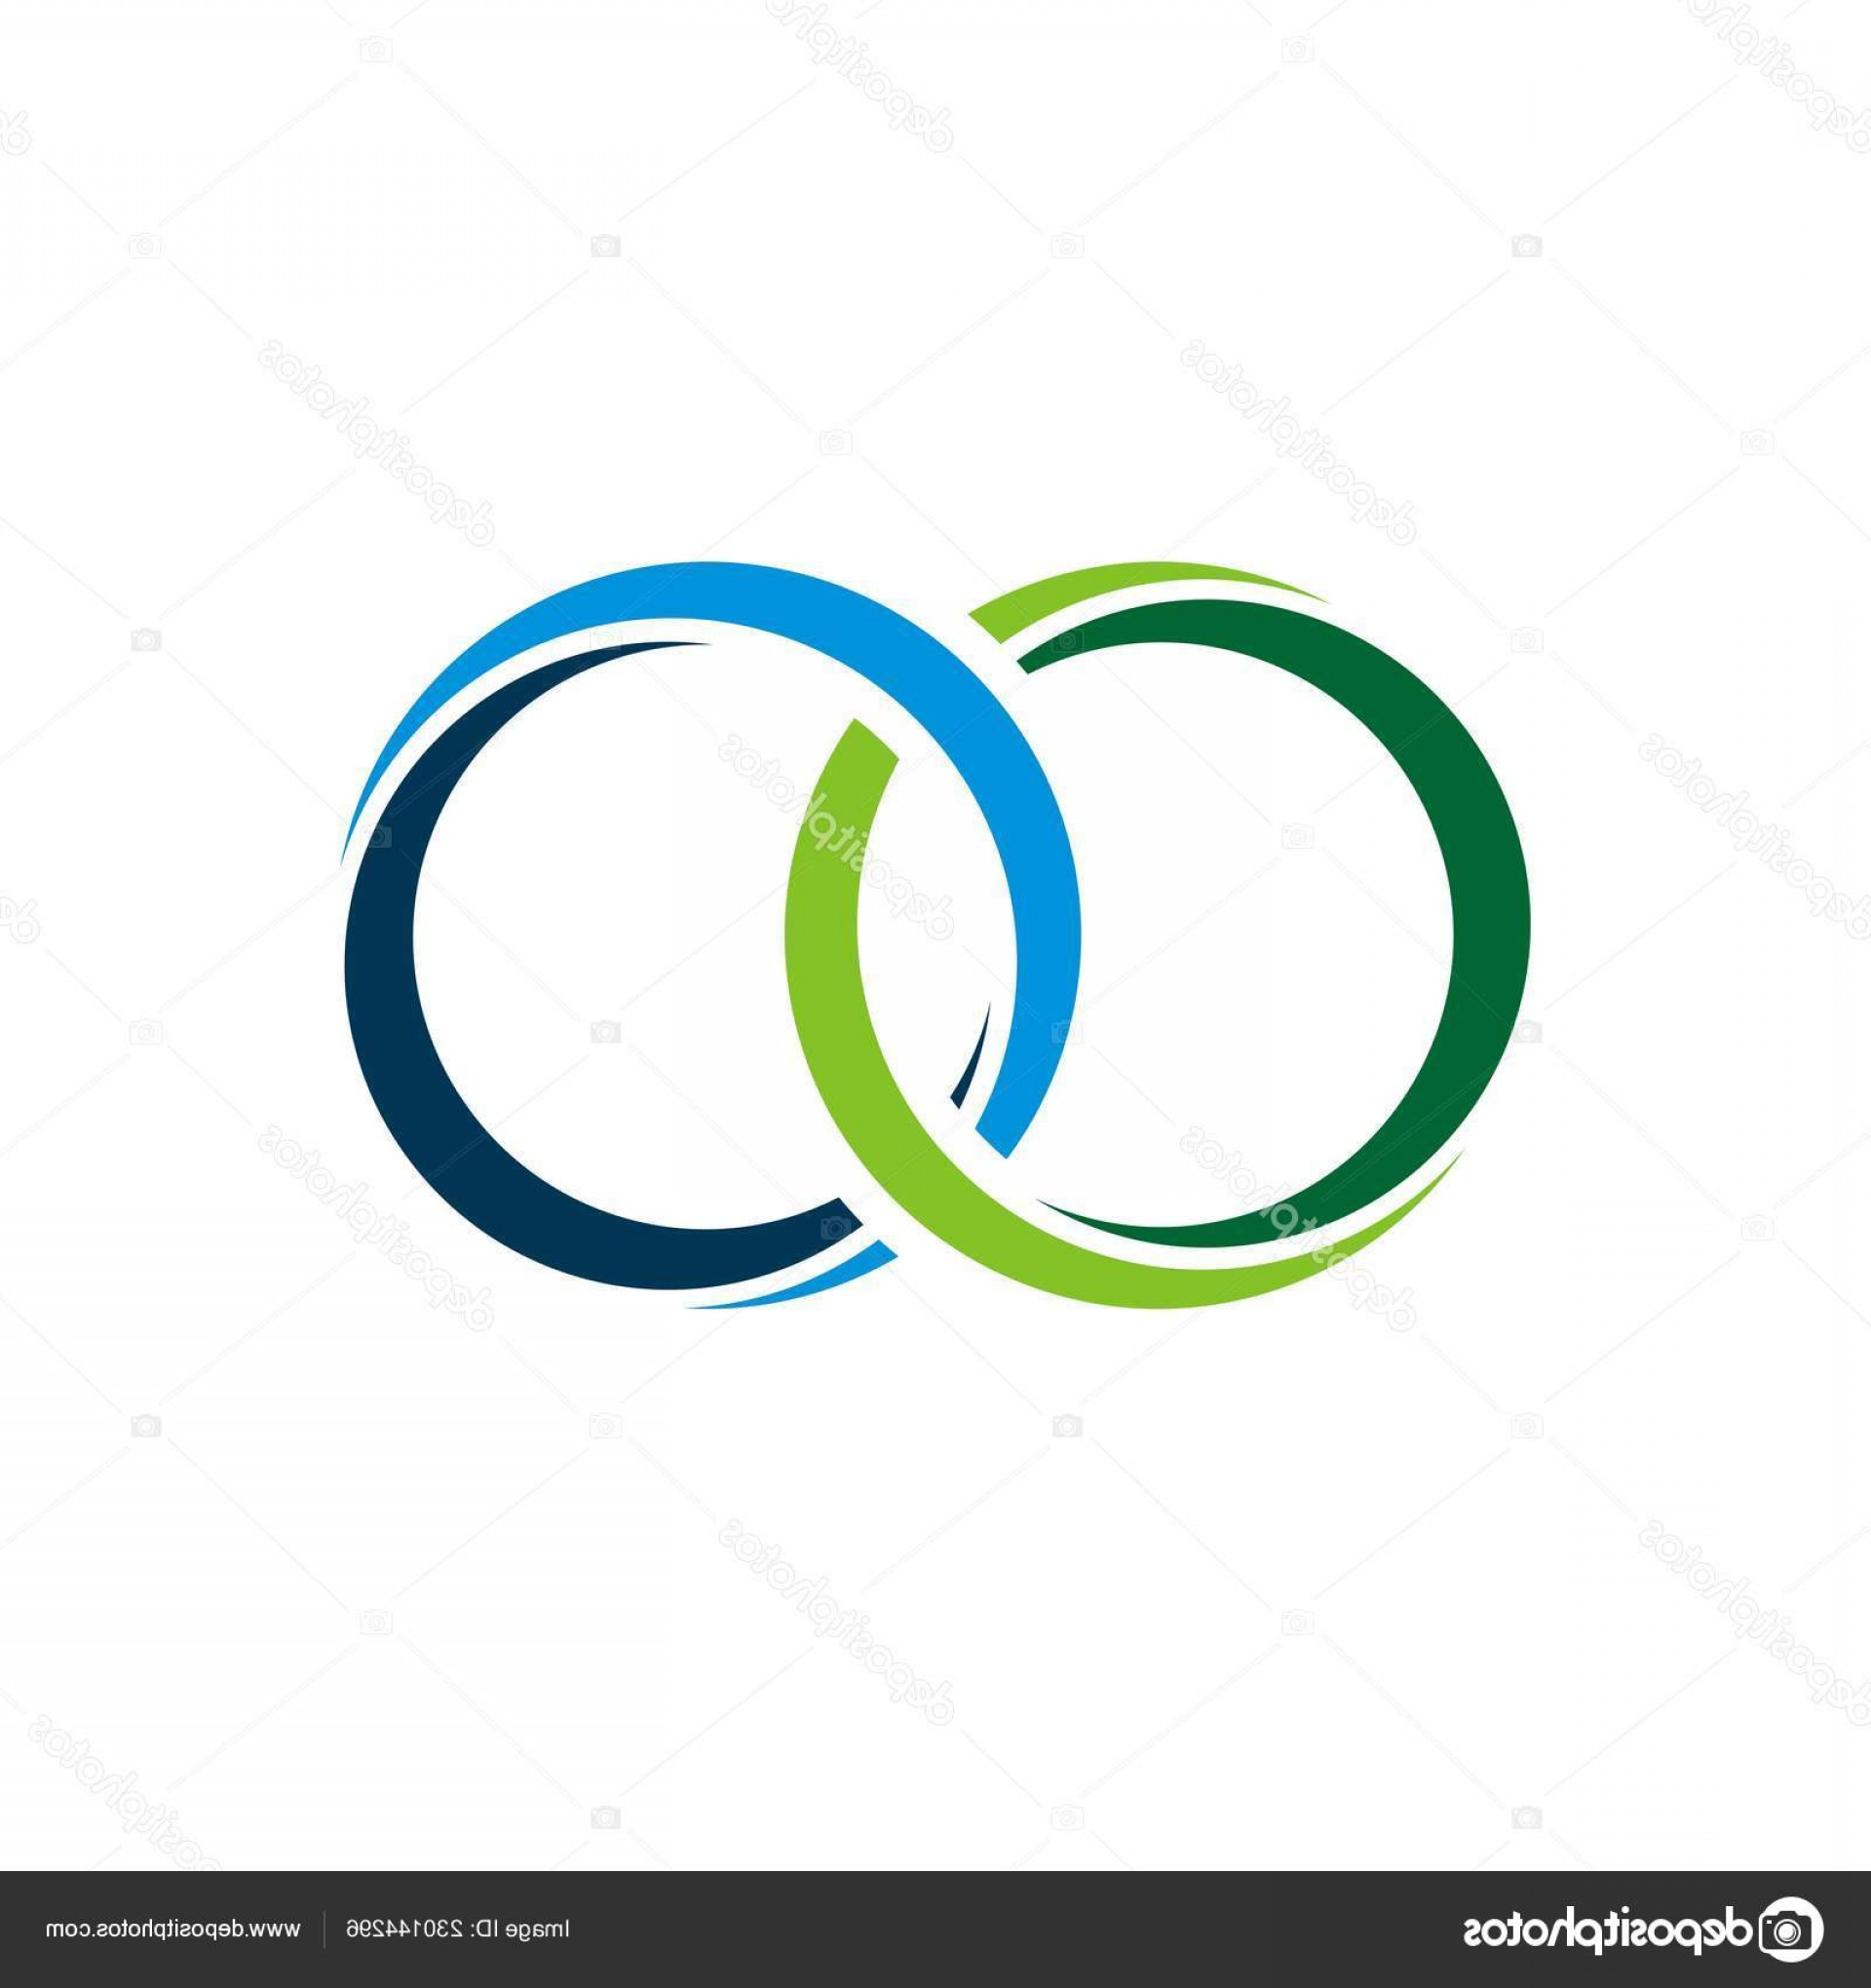 Vector Swoosh Simple Two Line: Stock Illustration Two Rings Swoosh Logo Template